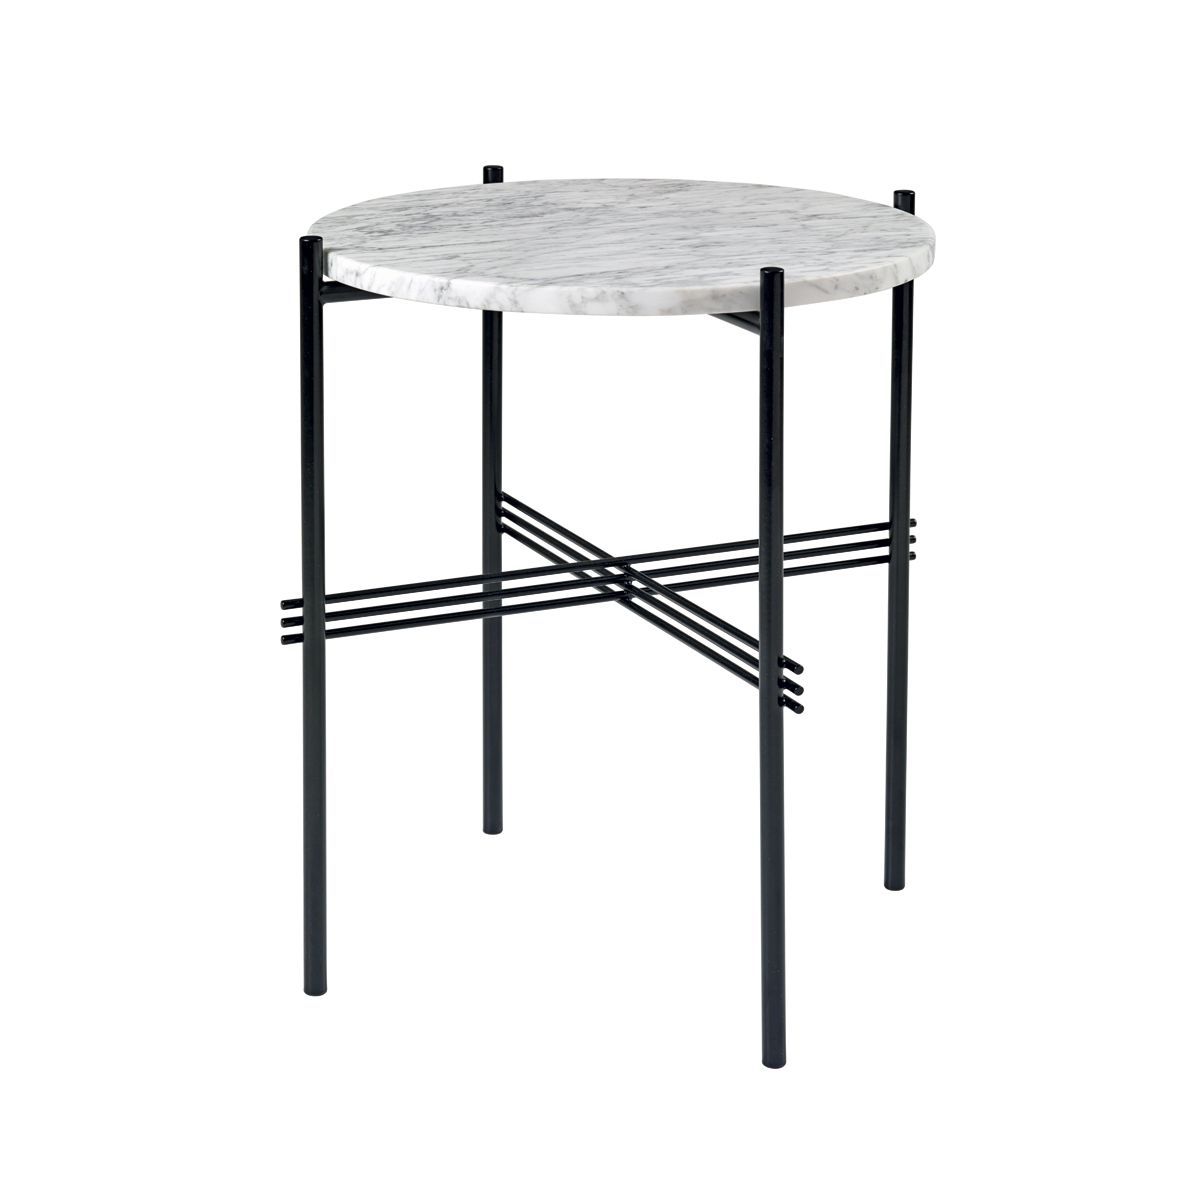 Ts Round Coffee Tables Marble Side Tables Side Table Marble Furniture